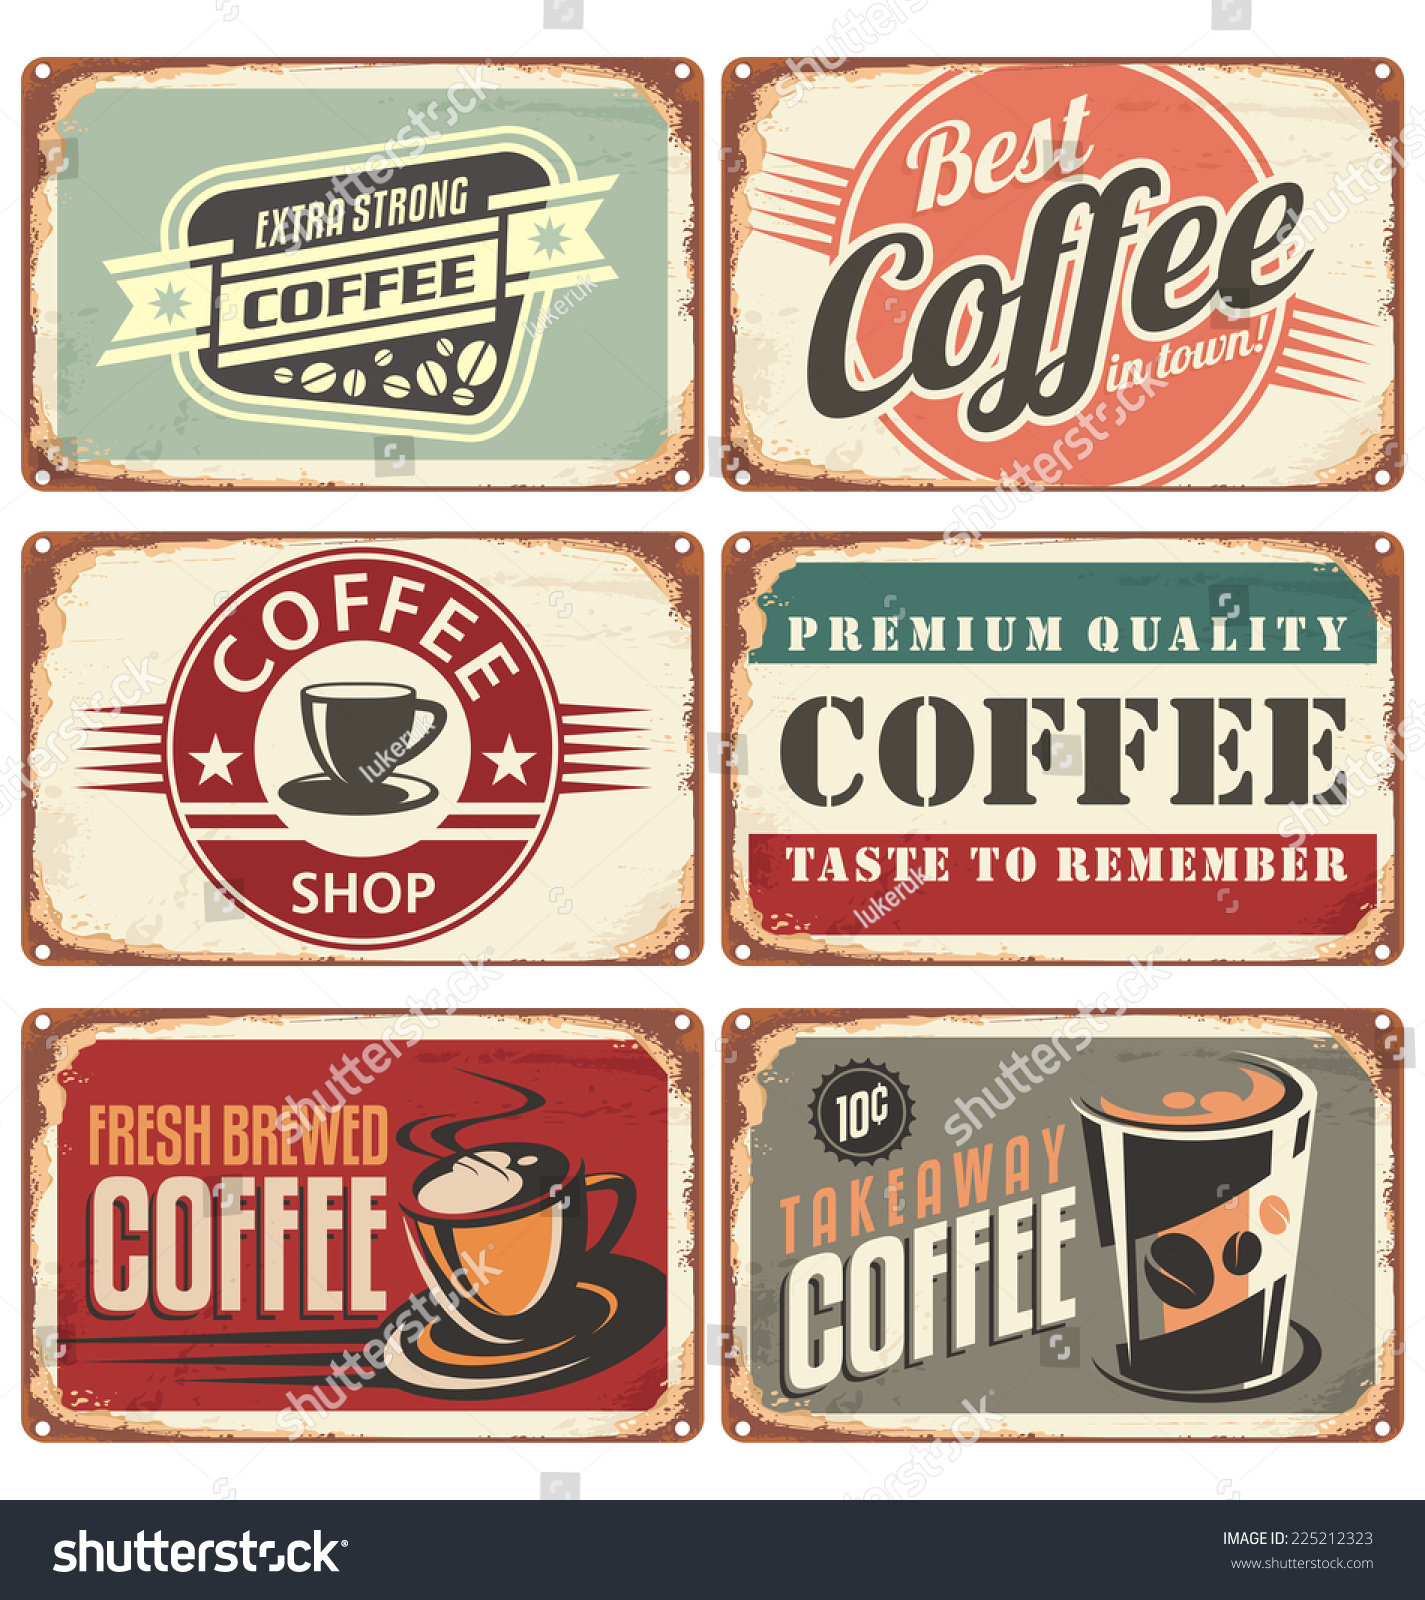 Vintage Café Set Of Vintage Cafe Tin Signs Retro Stock Photo 225212323